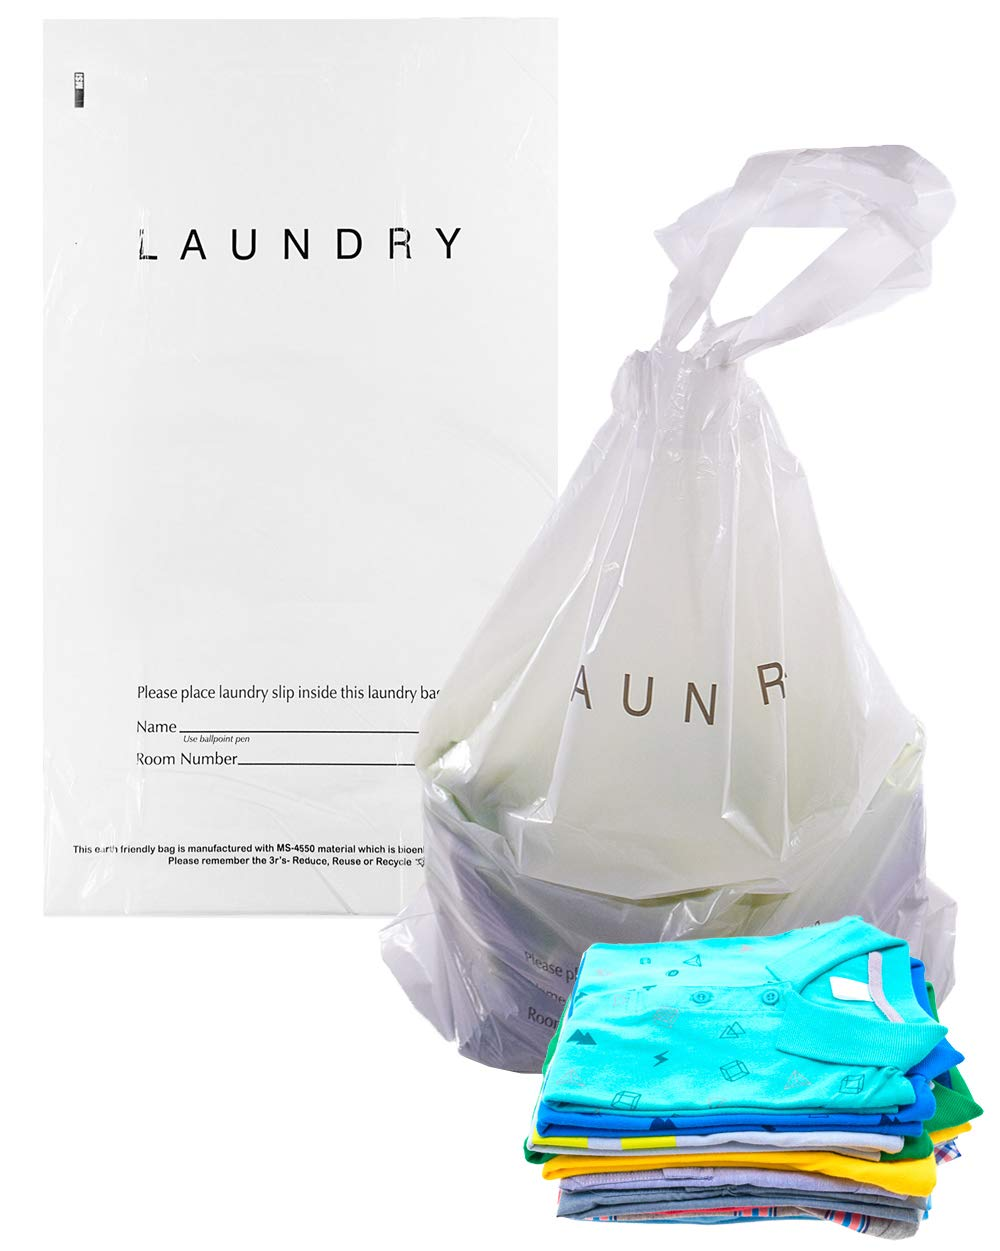 APQ Pack of 100 Tear Strip Laundry Bags 14 x 24. Ultra Thin Design 1.25 Mil. Hospitality Plastic Bags 14x24 with Drawstring Closure. Write-on Indicator Strips. Hotel Biodegradable Bags with Drawtape